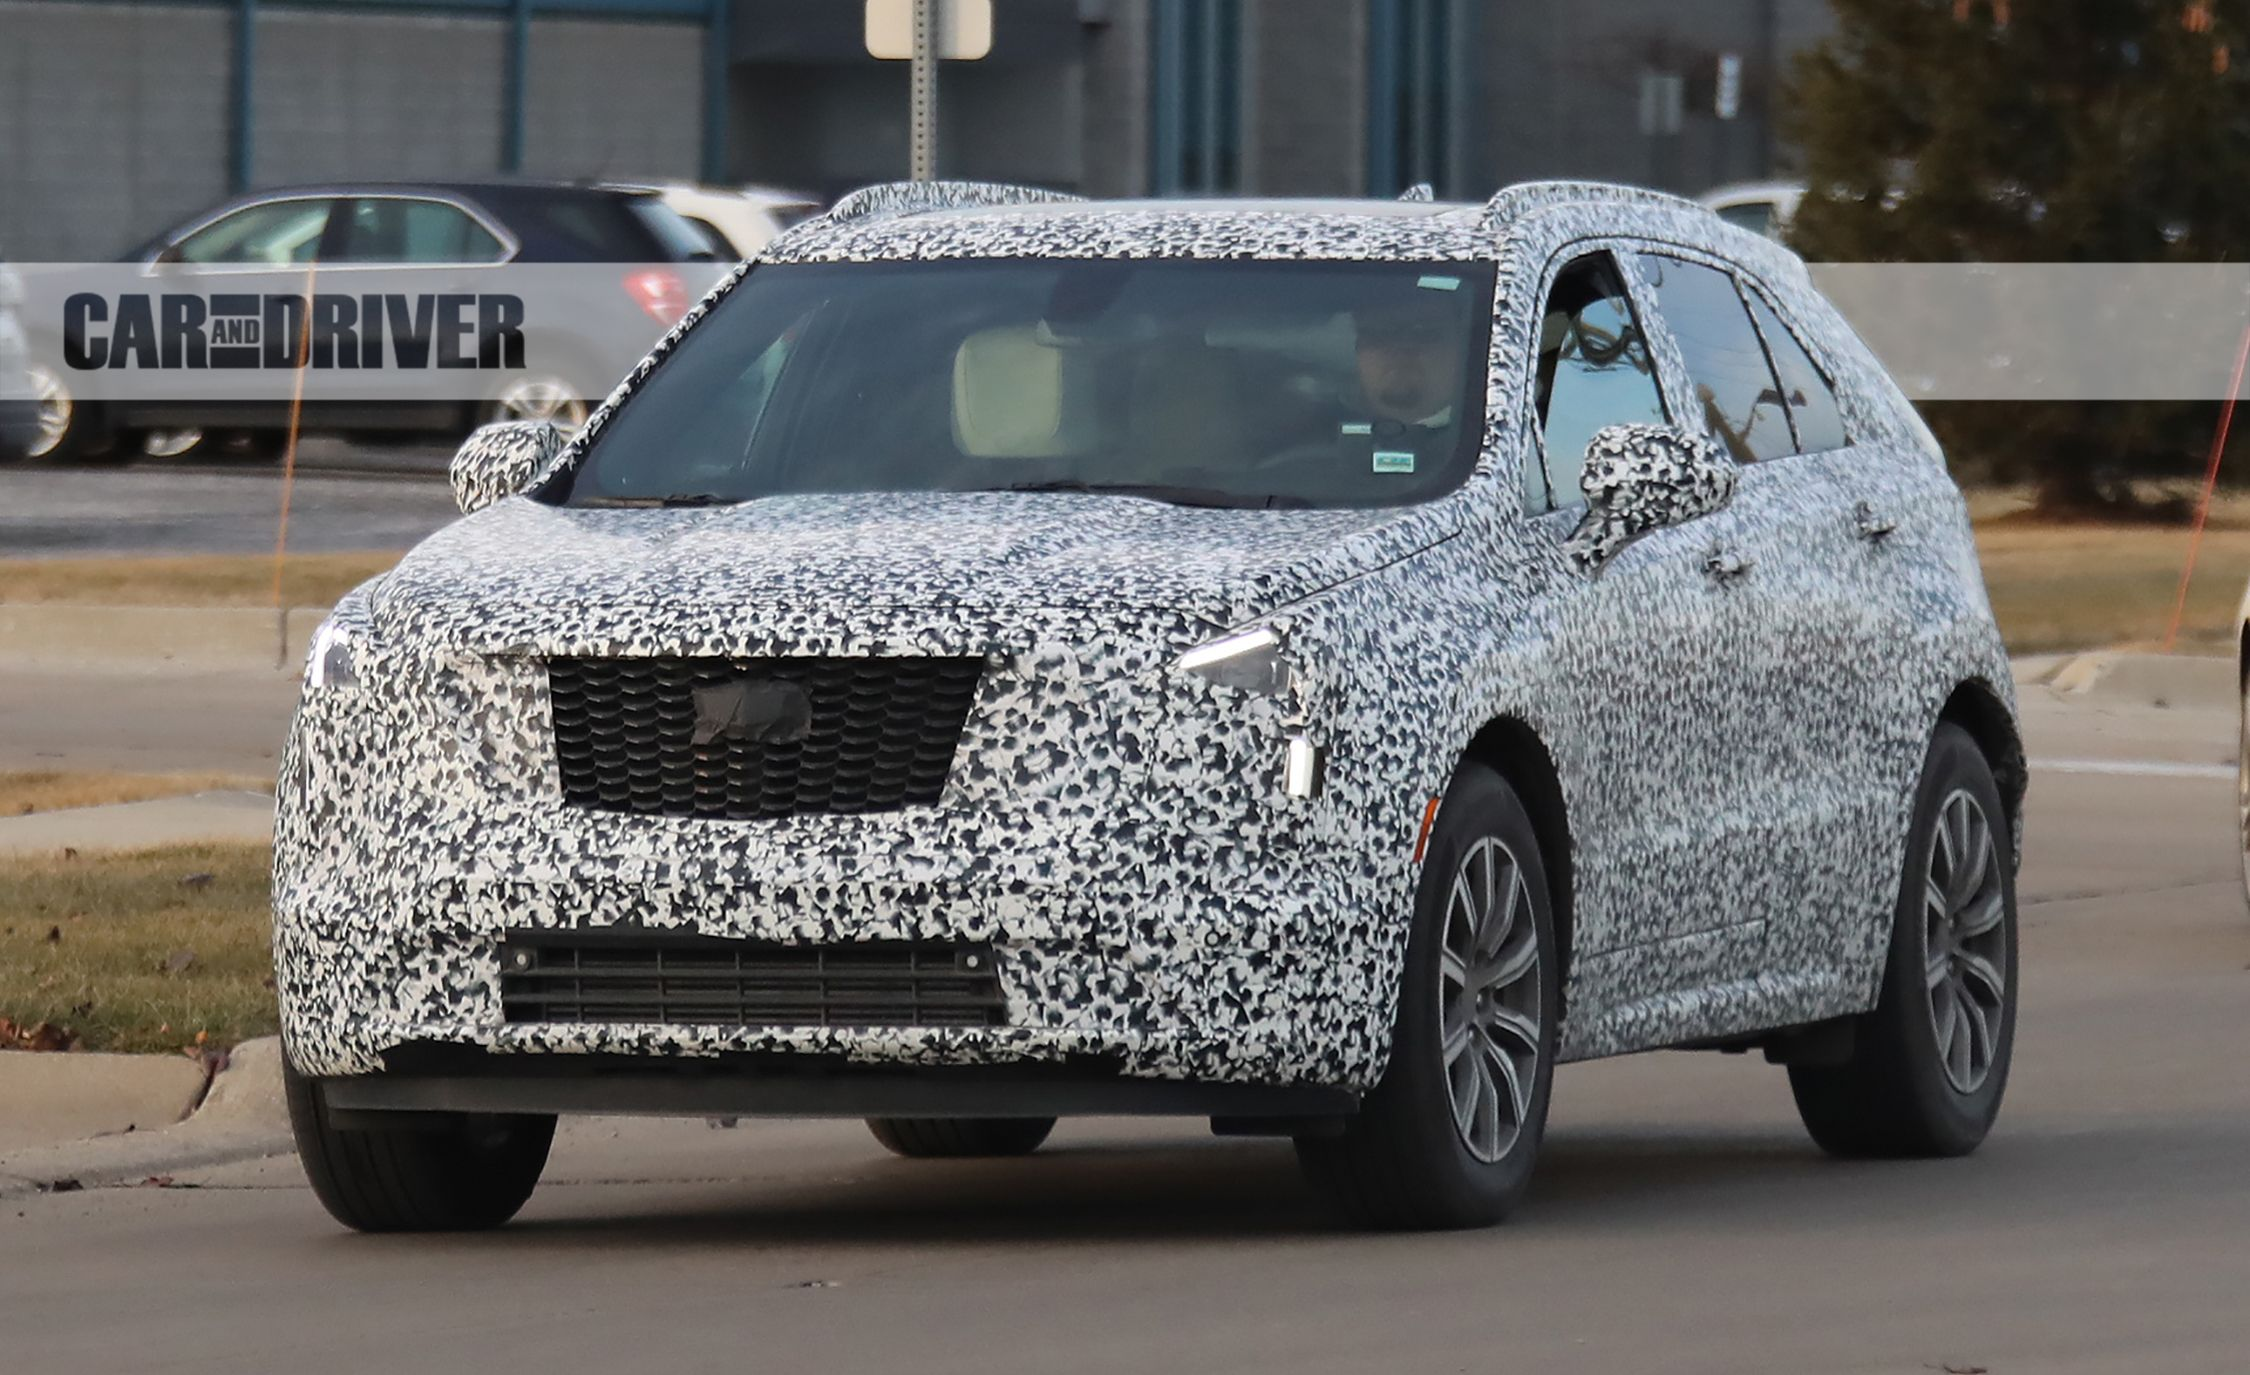 2019 Cadillac Xt4 Crossover Spied Future Cars Car And